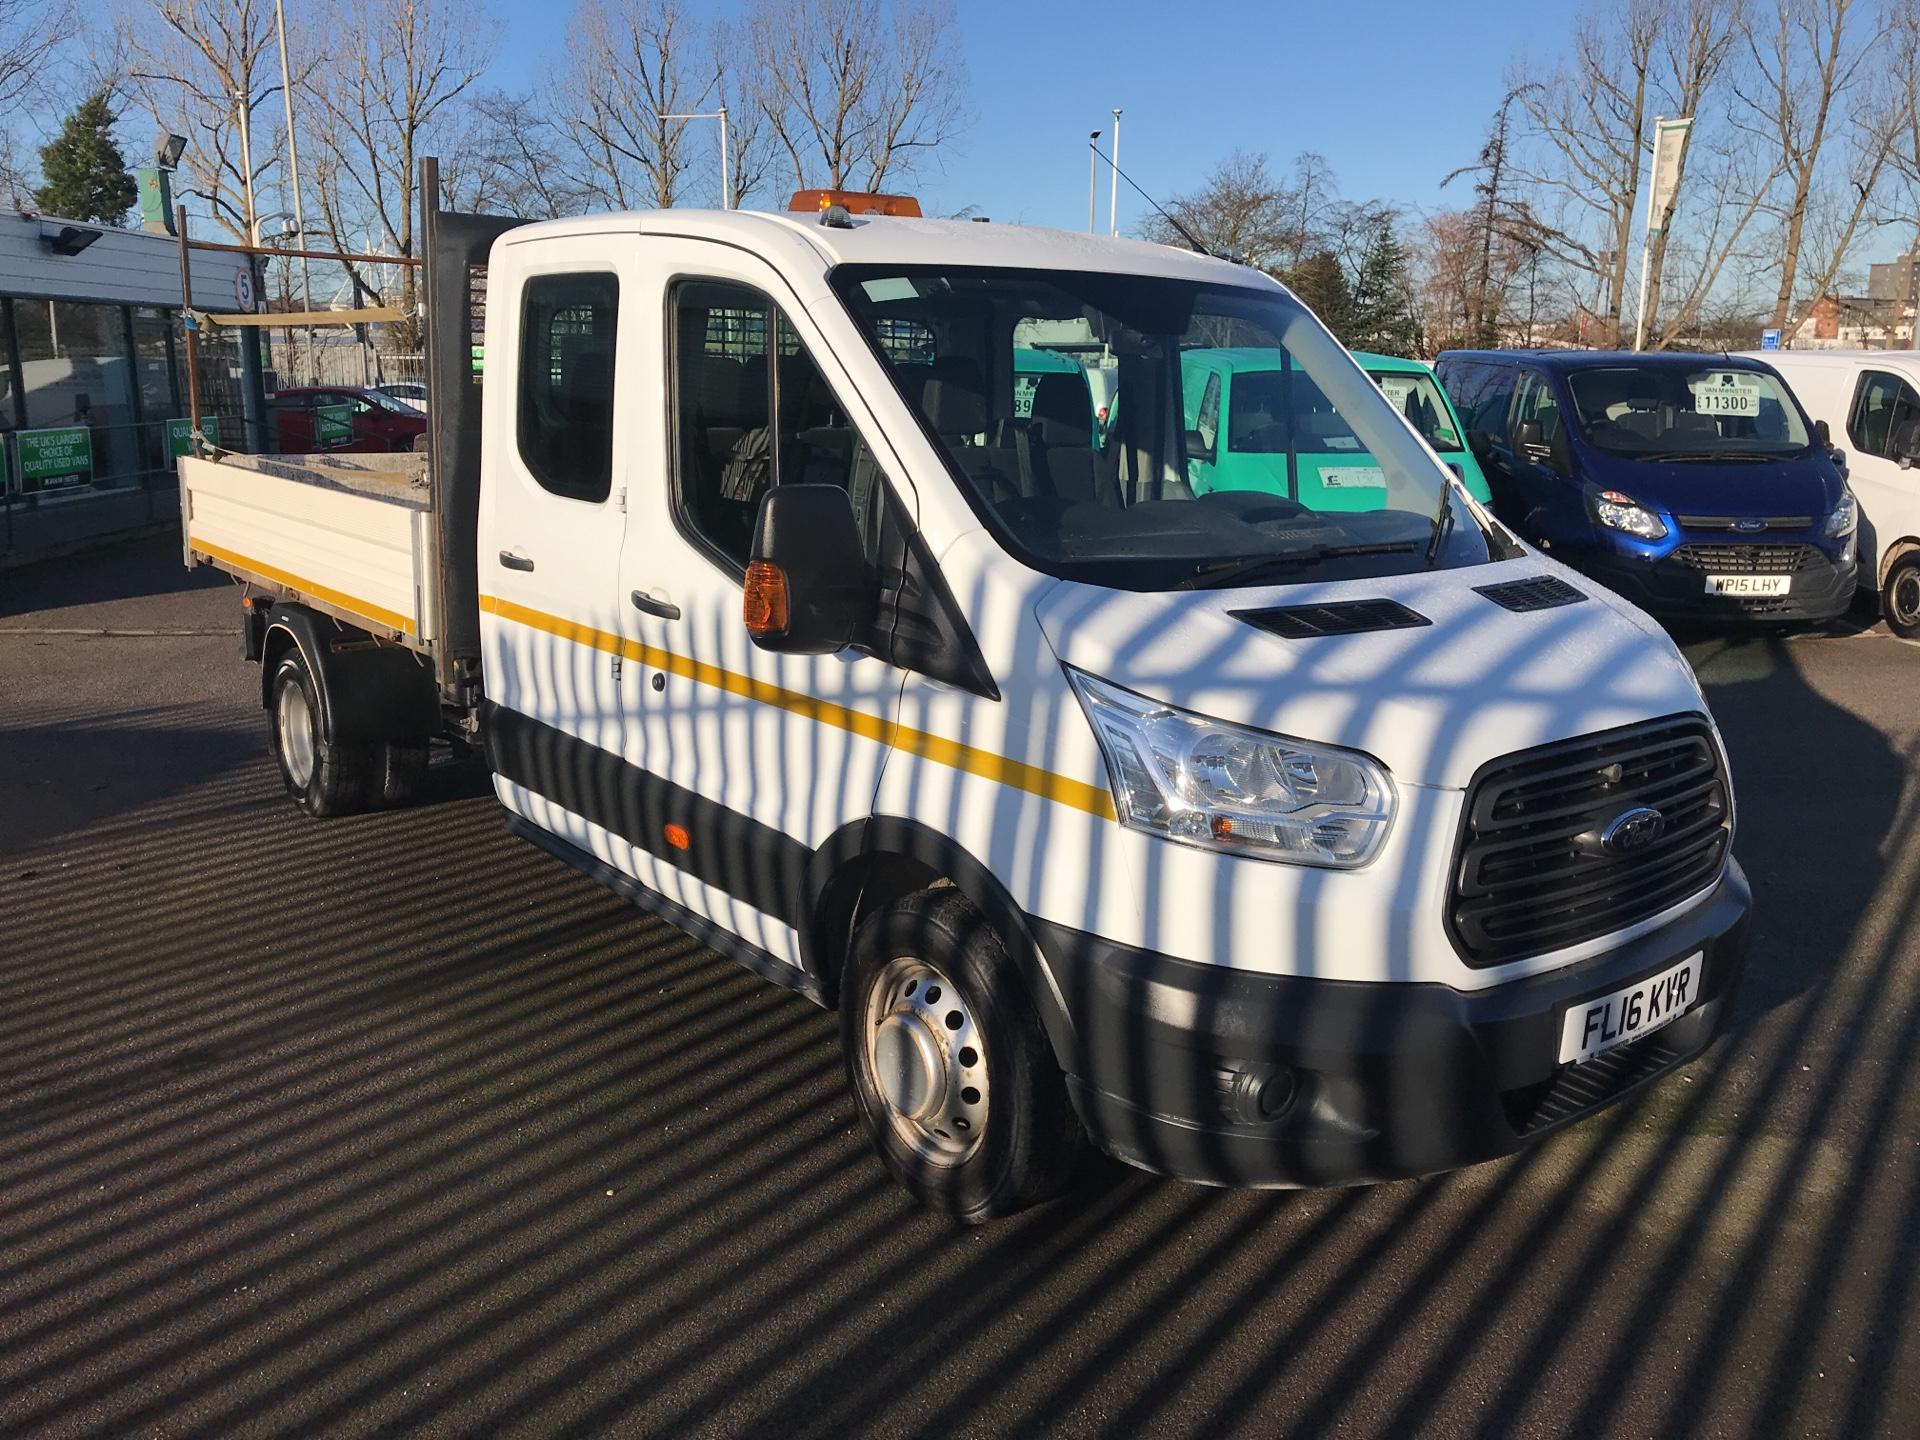 2016 Ford Transit 350 L3 DOUBLE CAB TIPPER 125PS EURO 5 *VALUE RANGE VEHICLE - CONDITION REFLECTED IN PRICE* (FL16KVR)